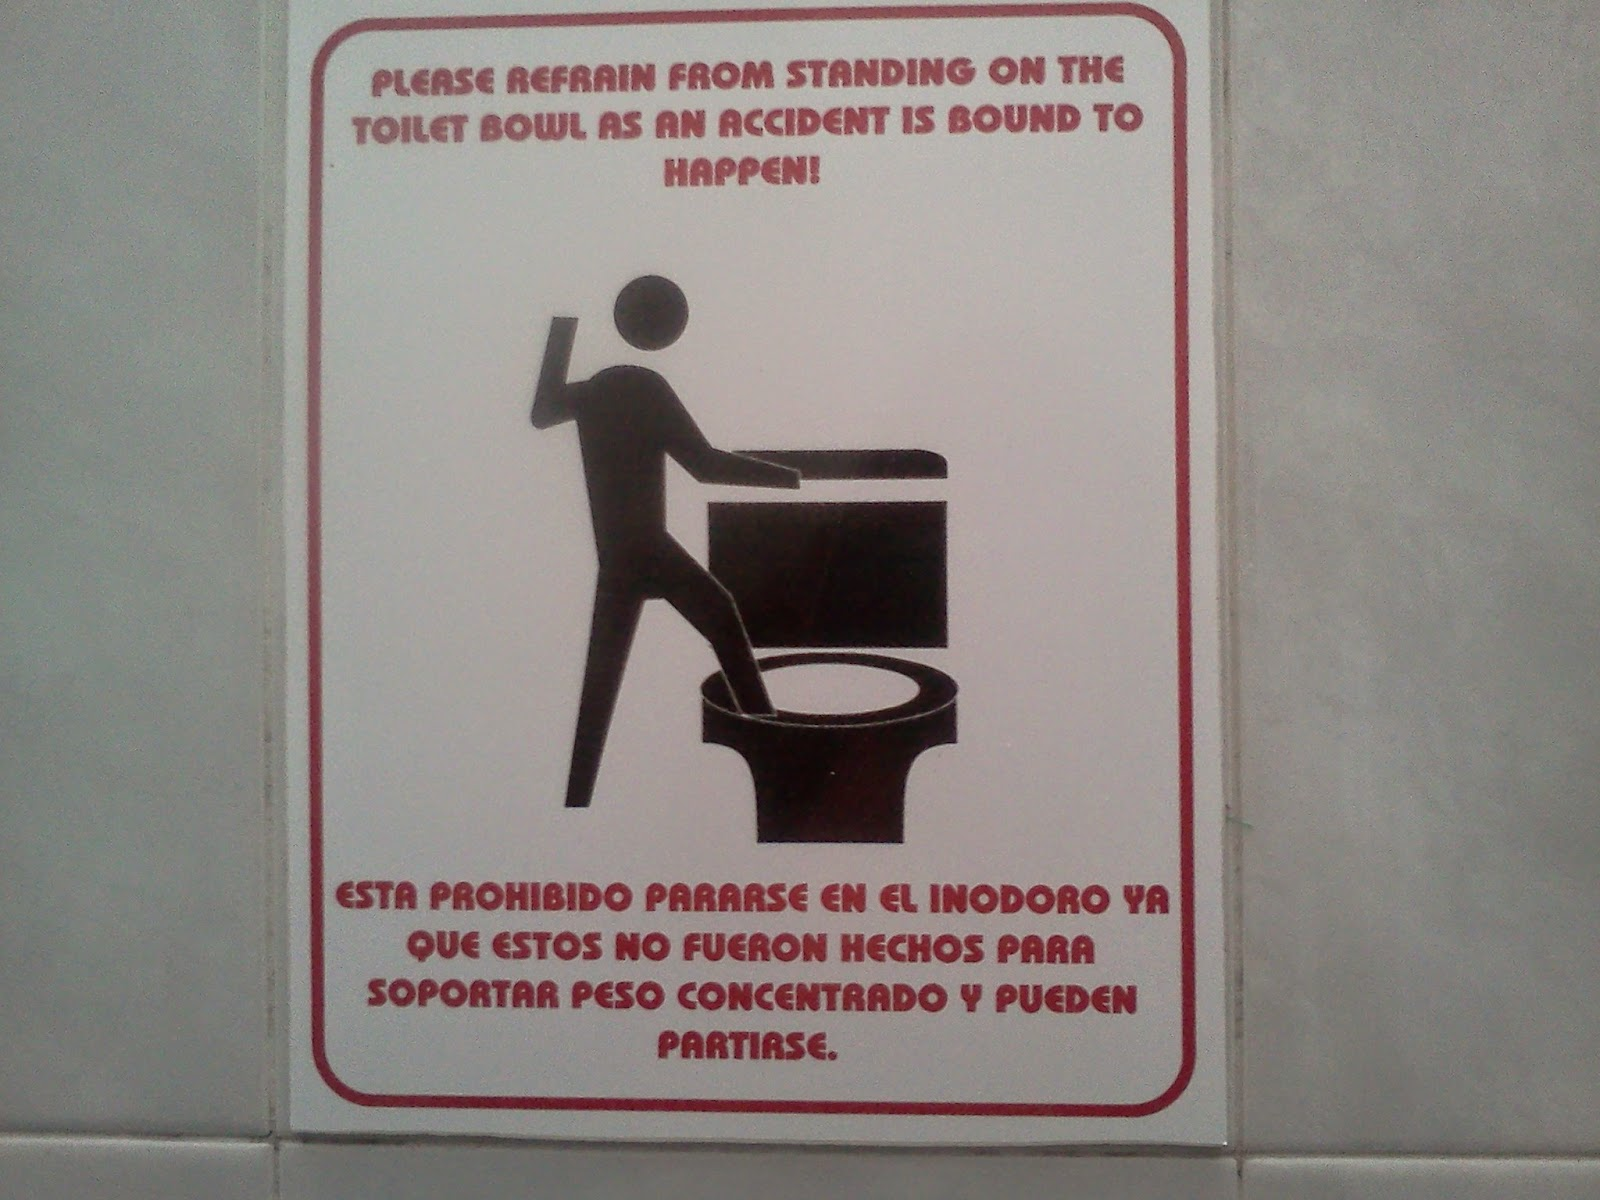 Please Refrain from Standing on the Toilet Bowl as an Accident is Bound to Happen!